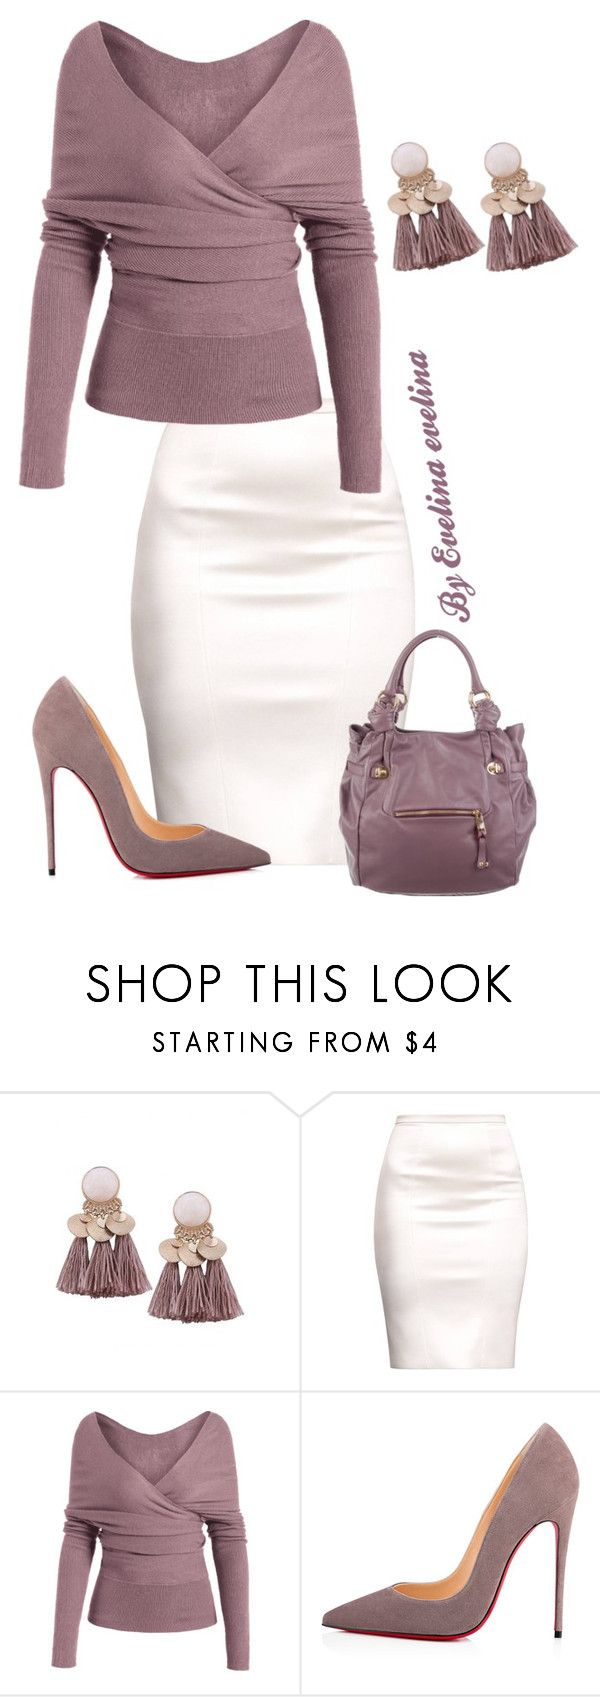 To acquire Summer eve stylish fashion picture trends